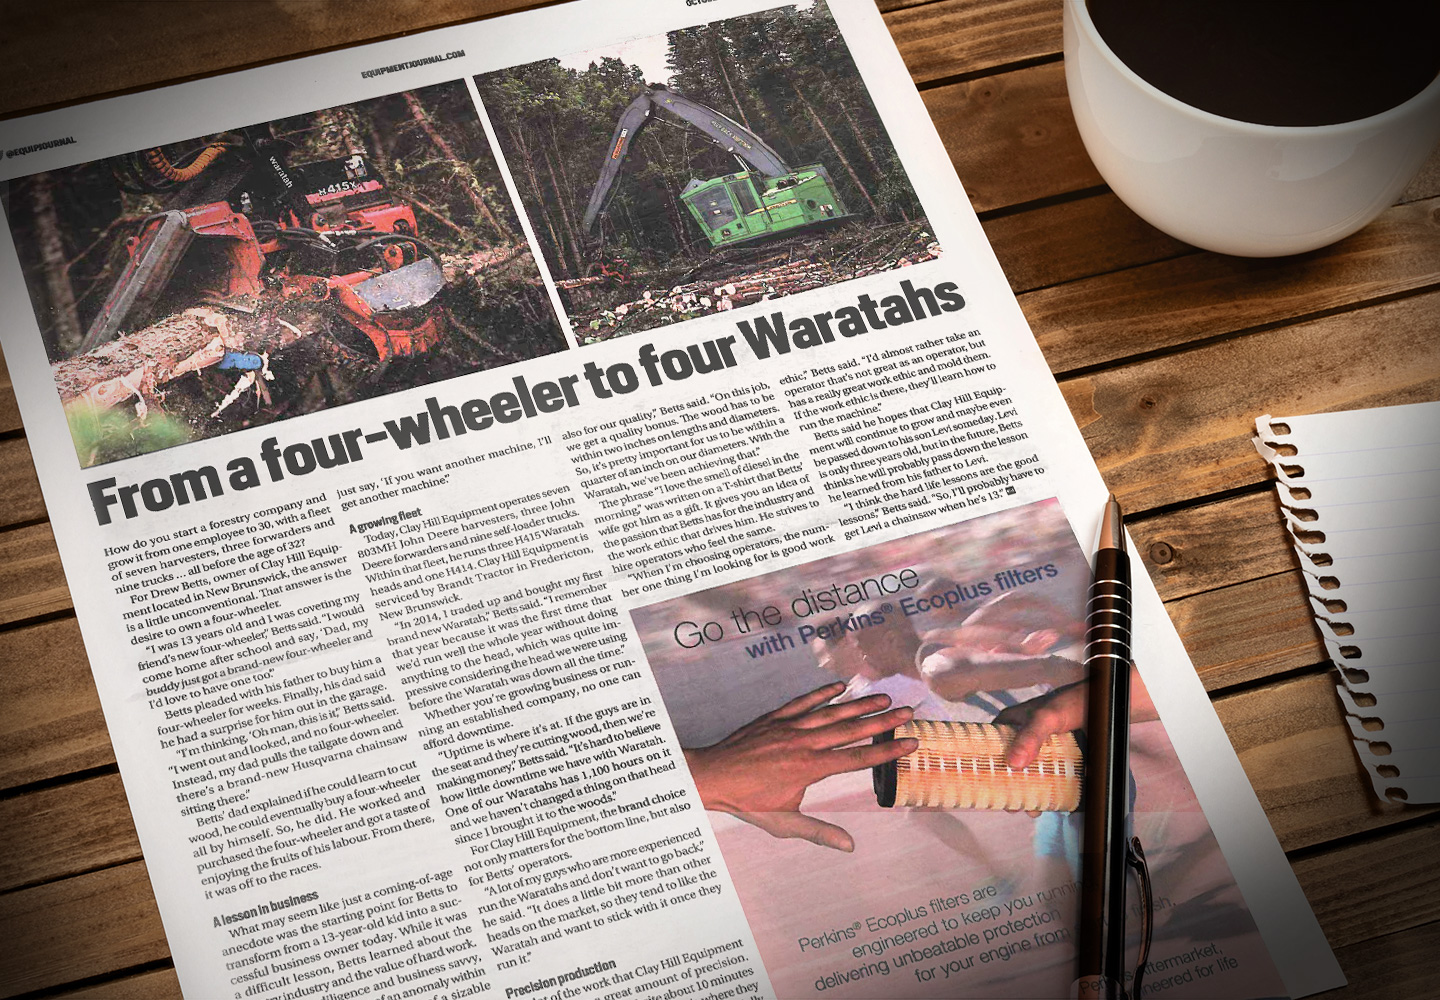 A newspaper on a desk is a Waratah placement in Equipment Journal - the title of the story is From a four-wheeler to four Waratahs